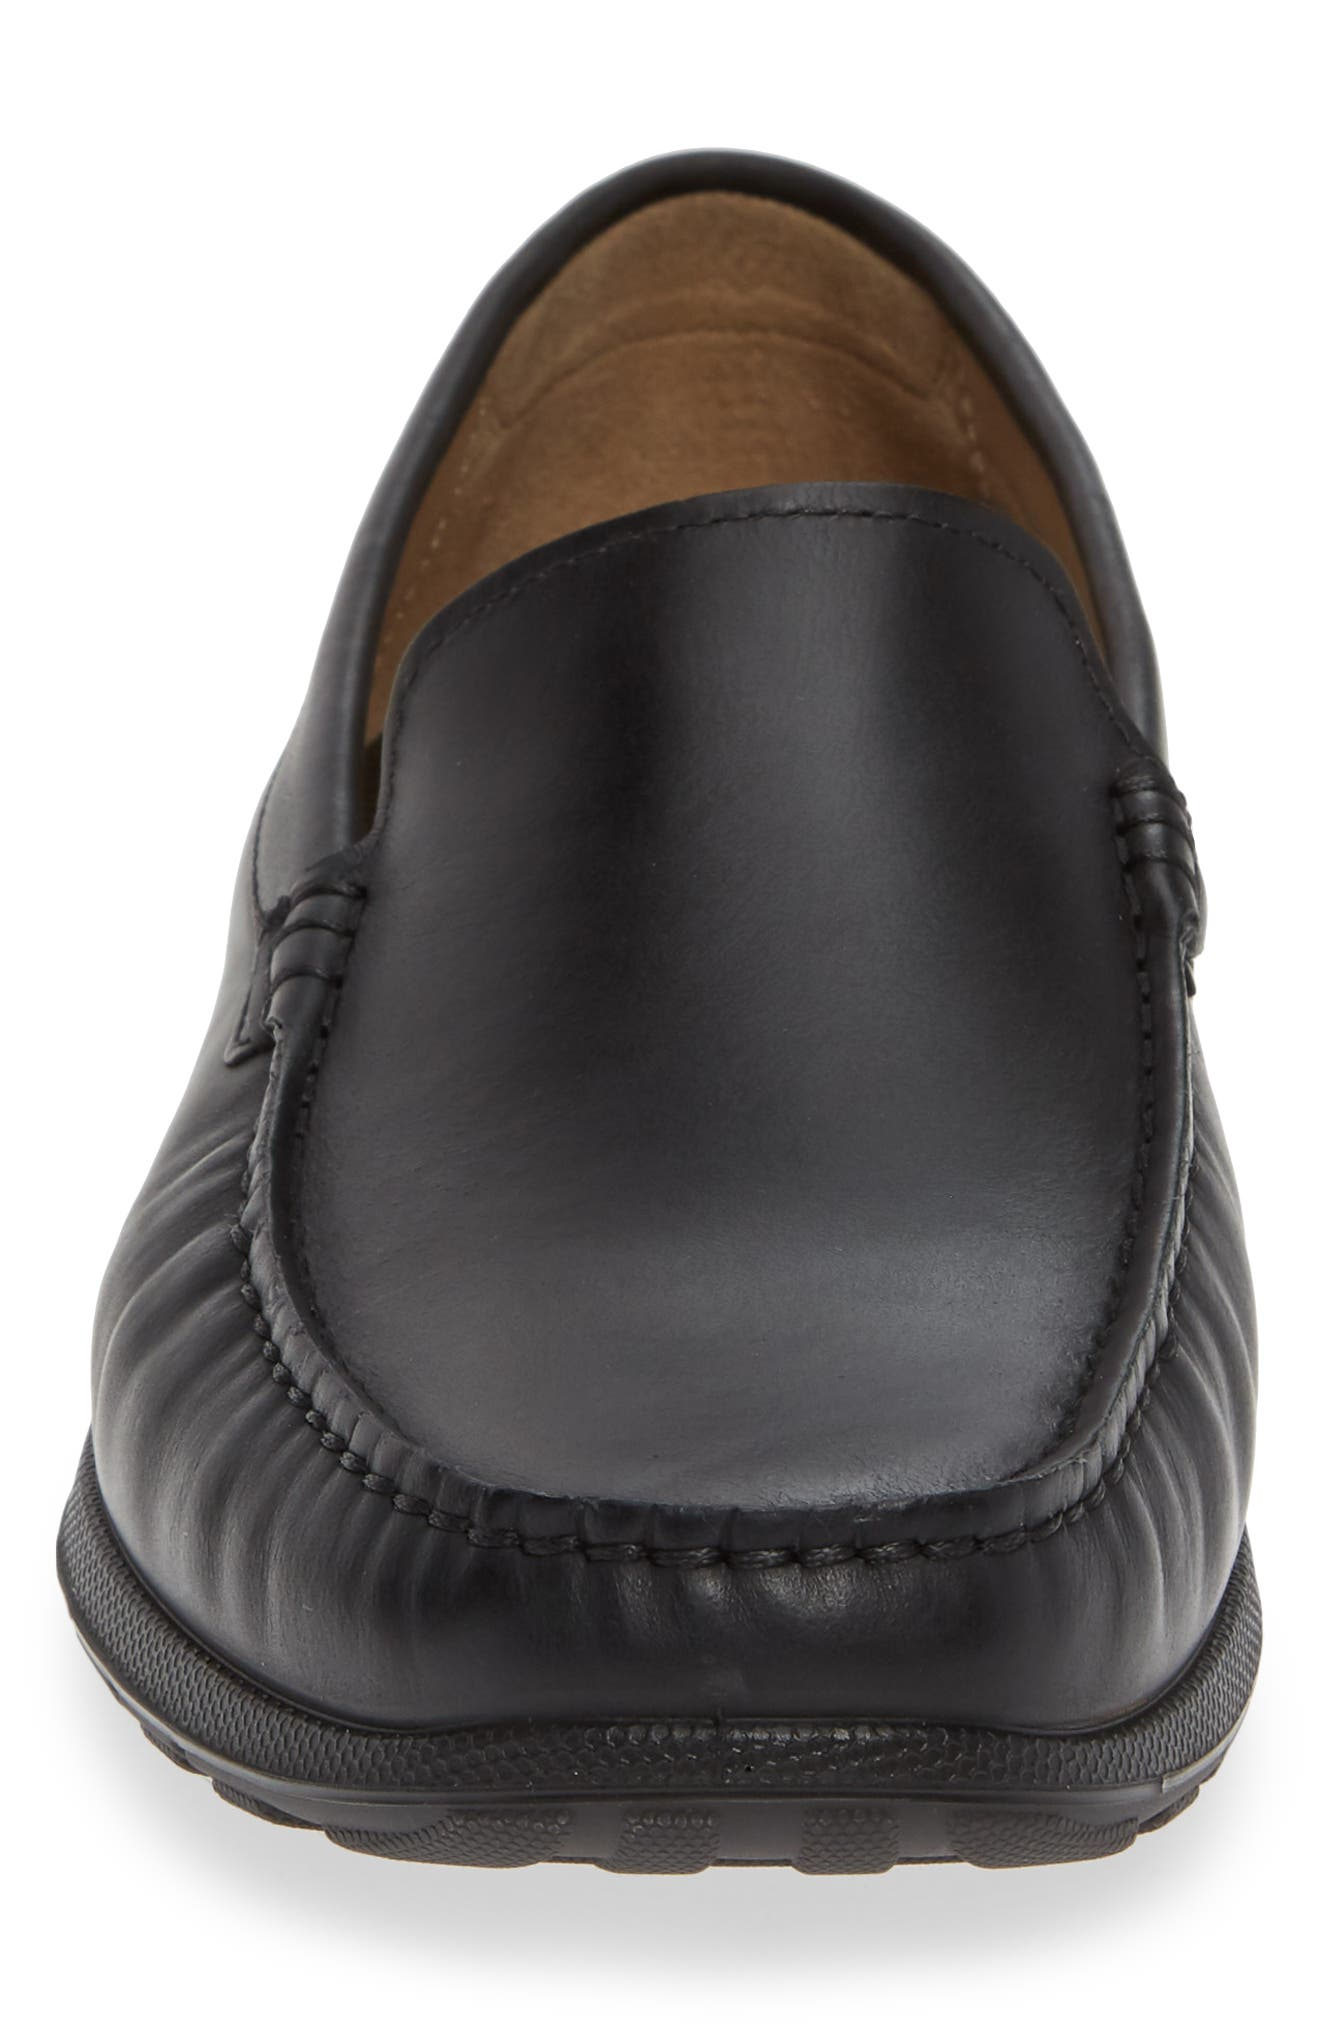 ECCO, Dip Moc Toe Driving Loafer, Alternate thumbnail 4, color, BLACK LEATHER